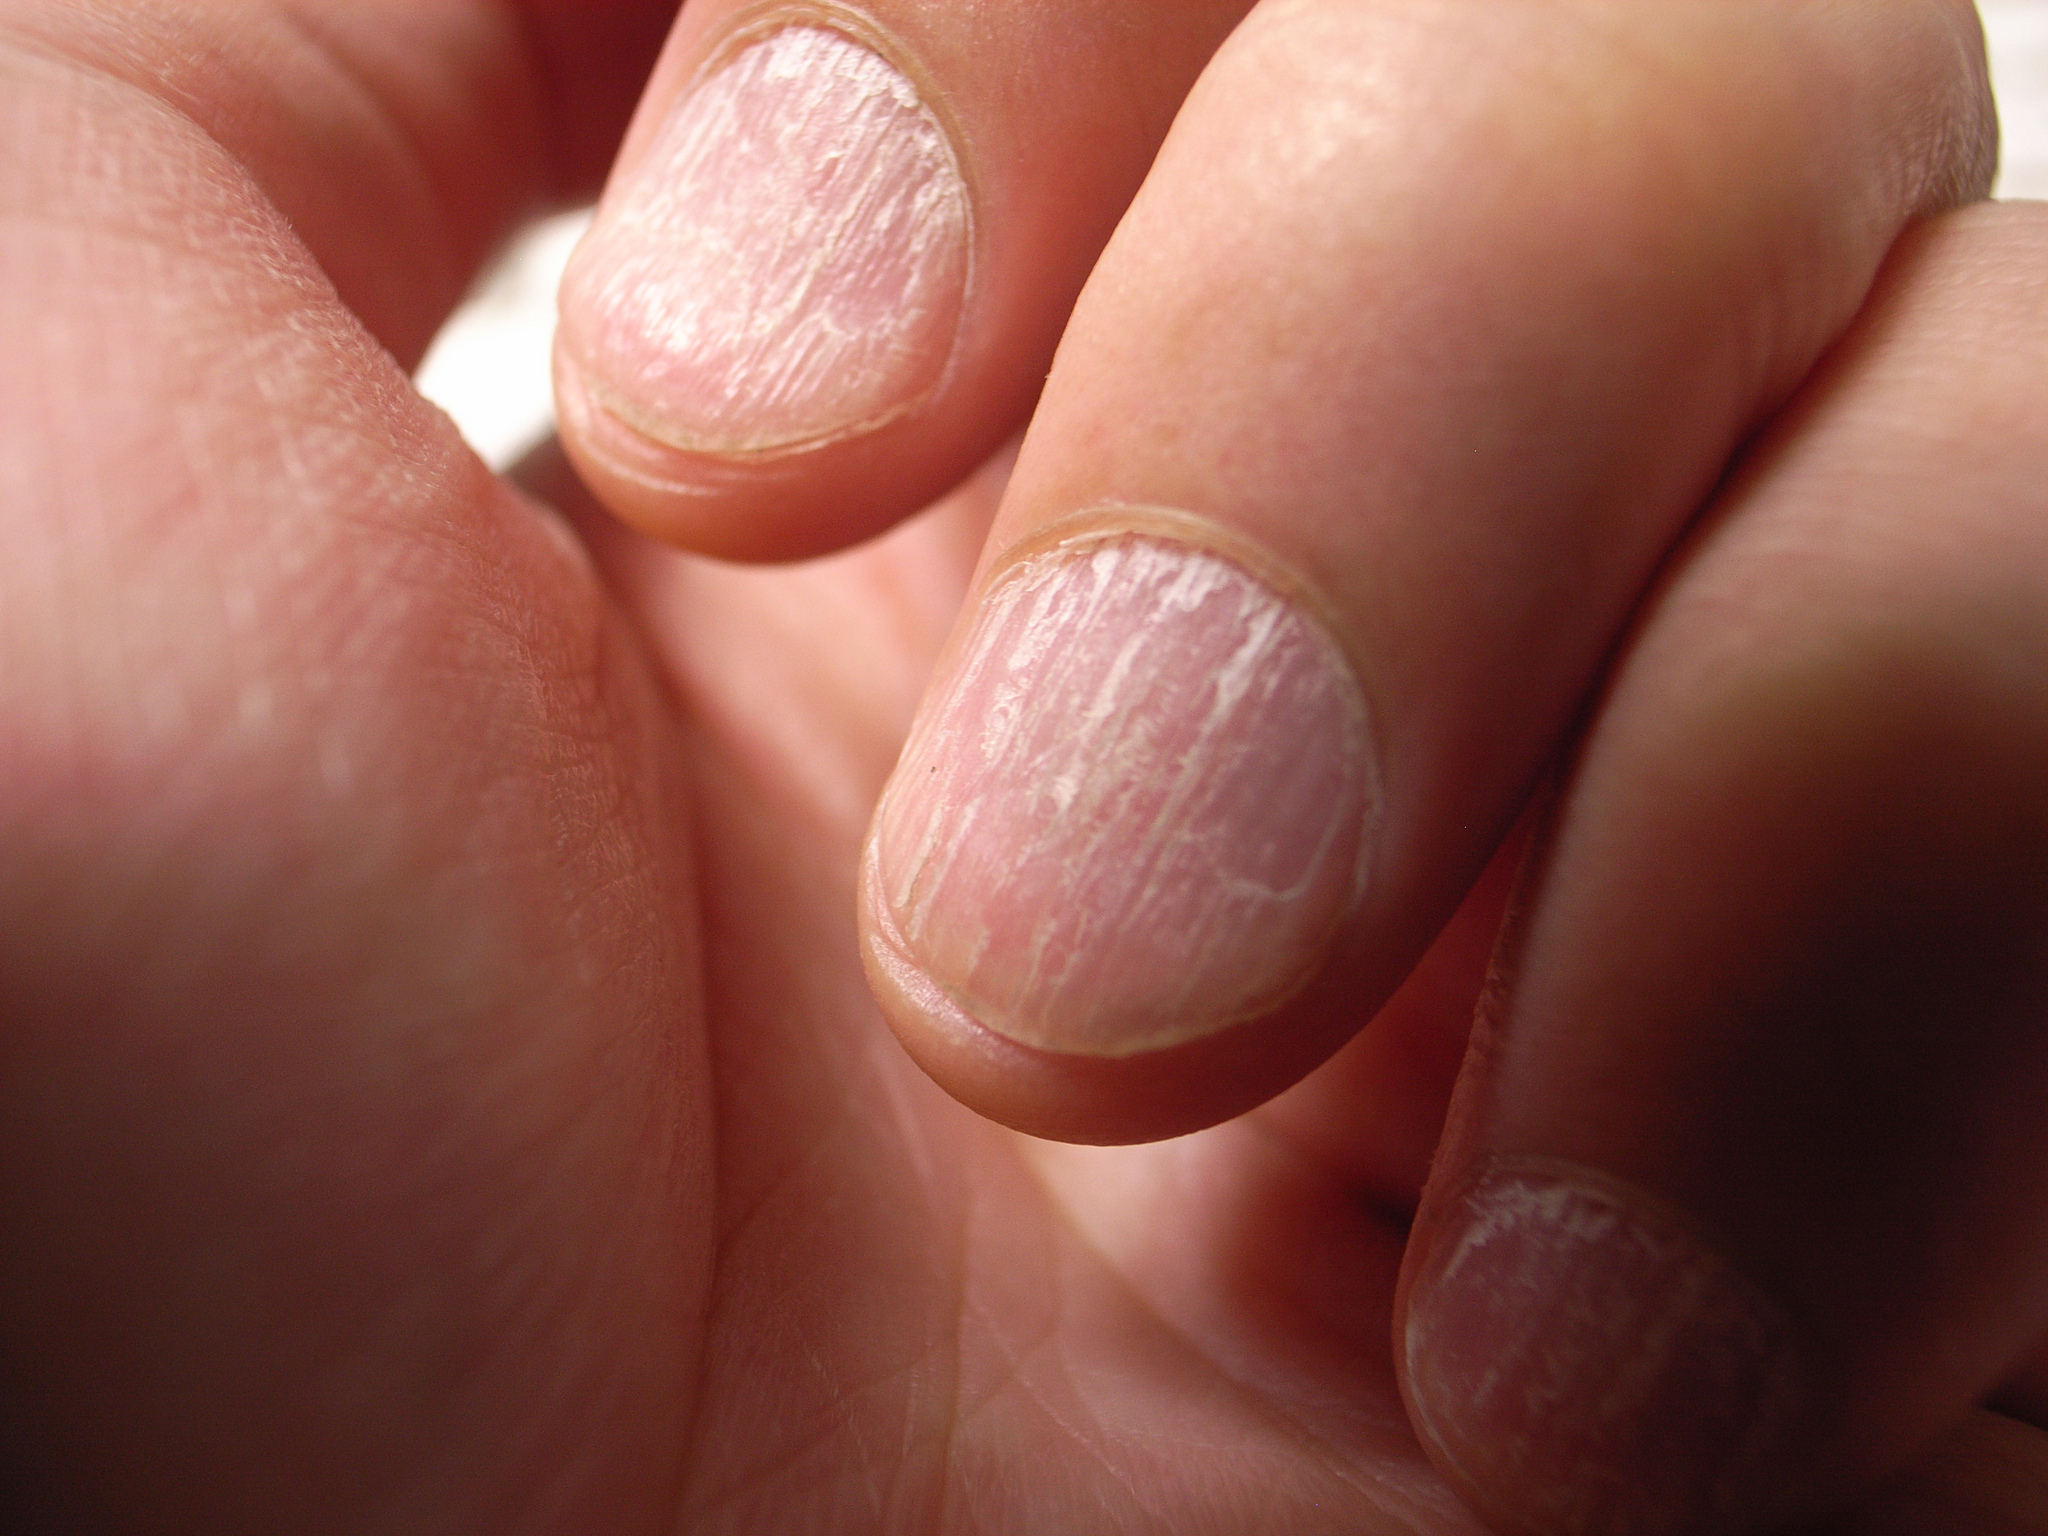 What these common nail problems could be telling you about your health